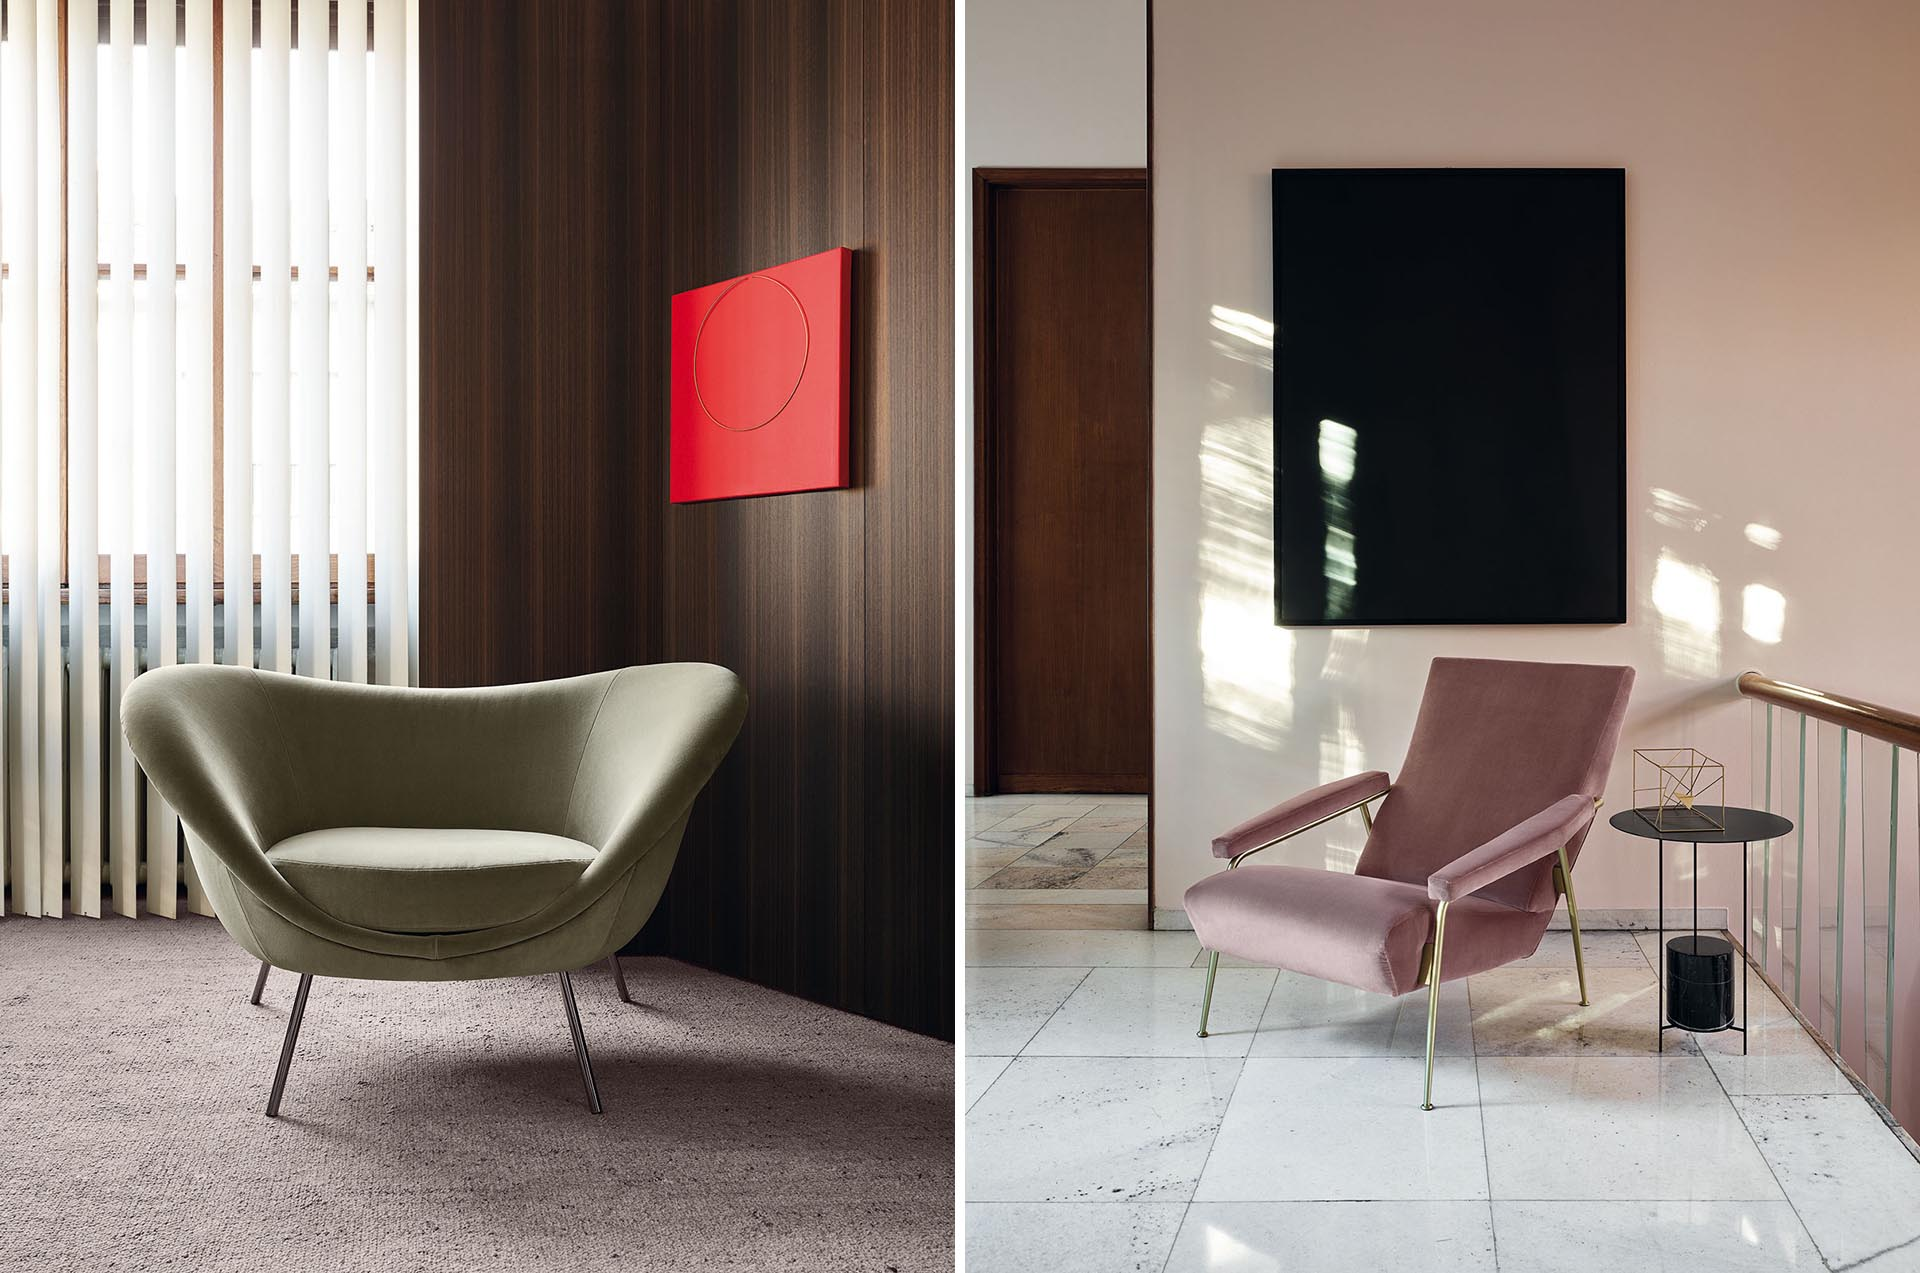 Modern living room furniture designs from Italian company Molteni&C.